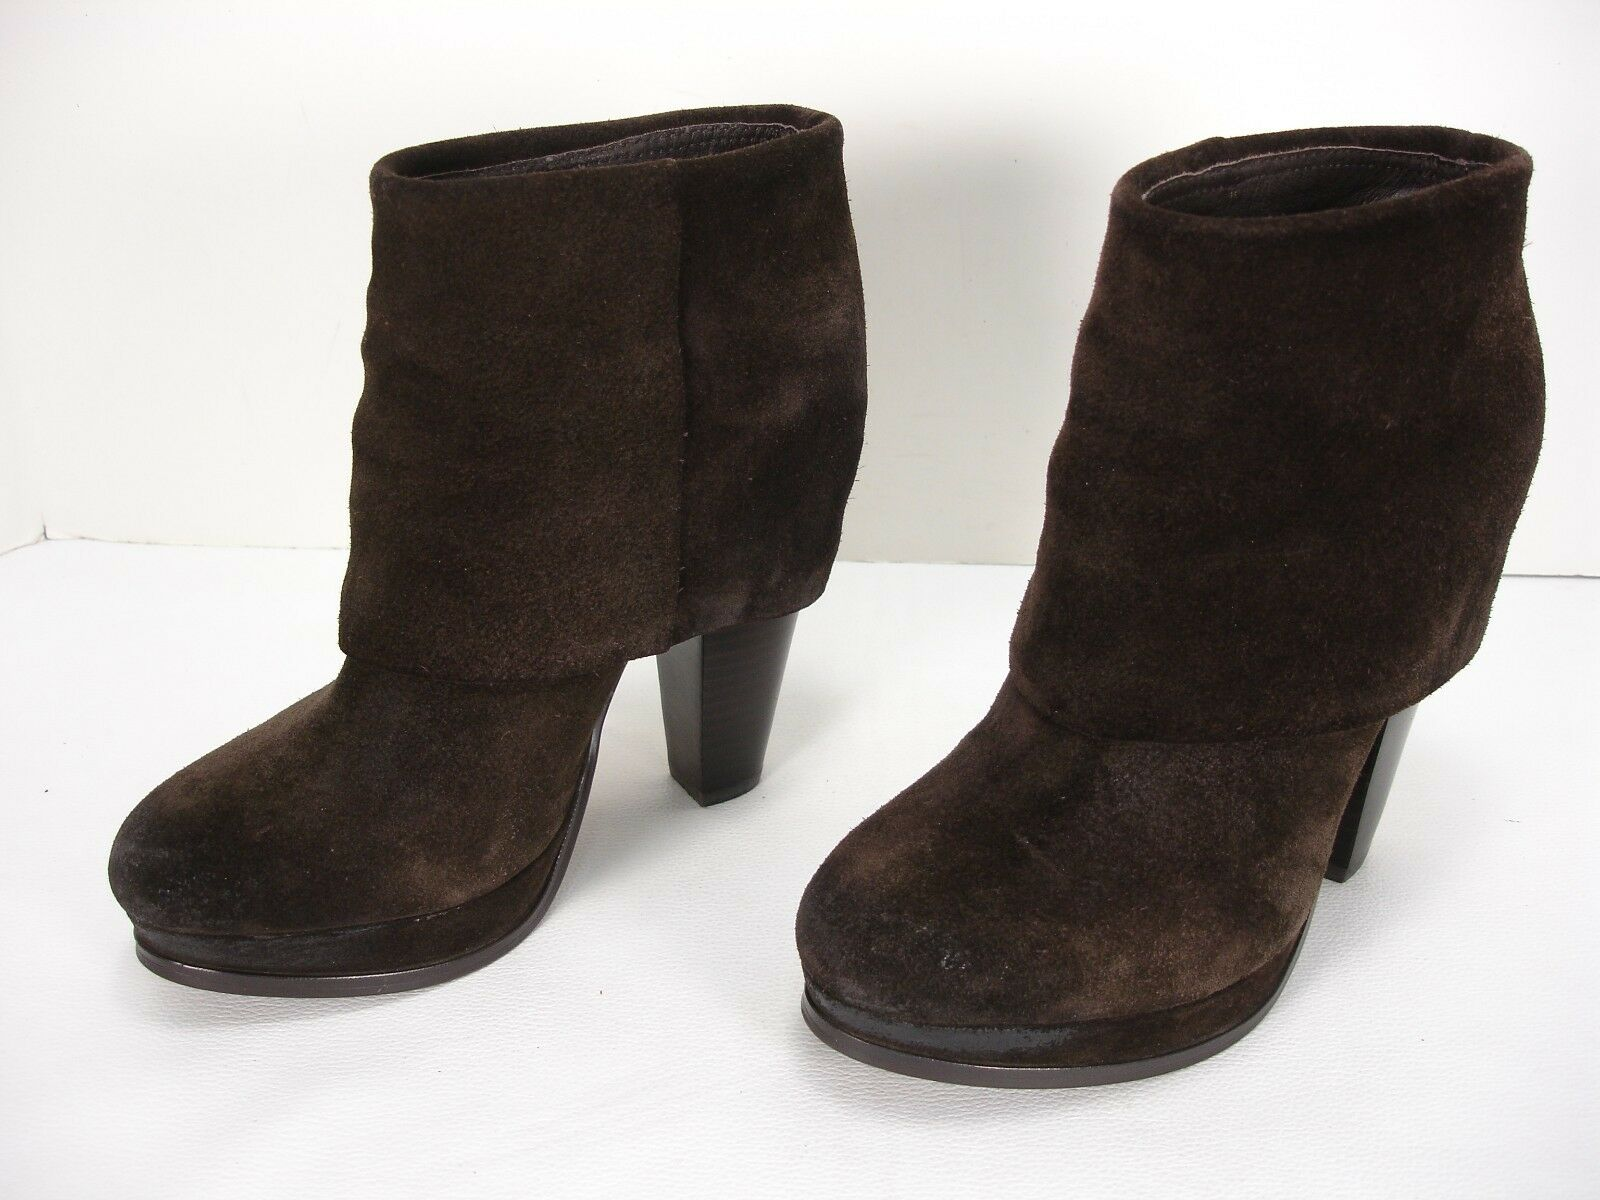 ASH EASY SUEDE PLATFORMS PULL ON ANKLE BOOTS BOOTIES WOMEN'S 36.5